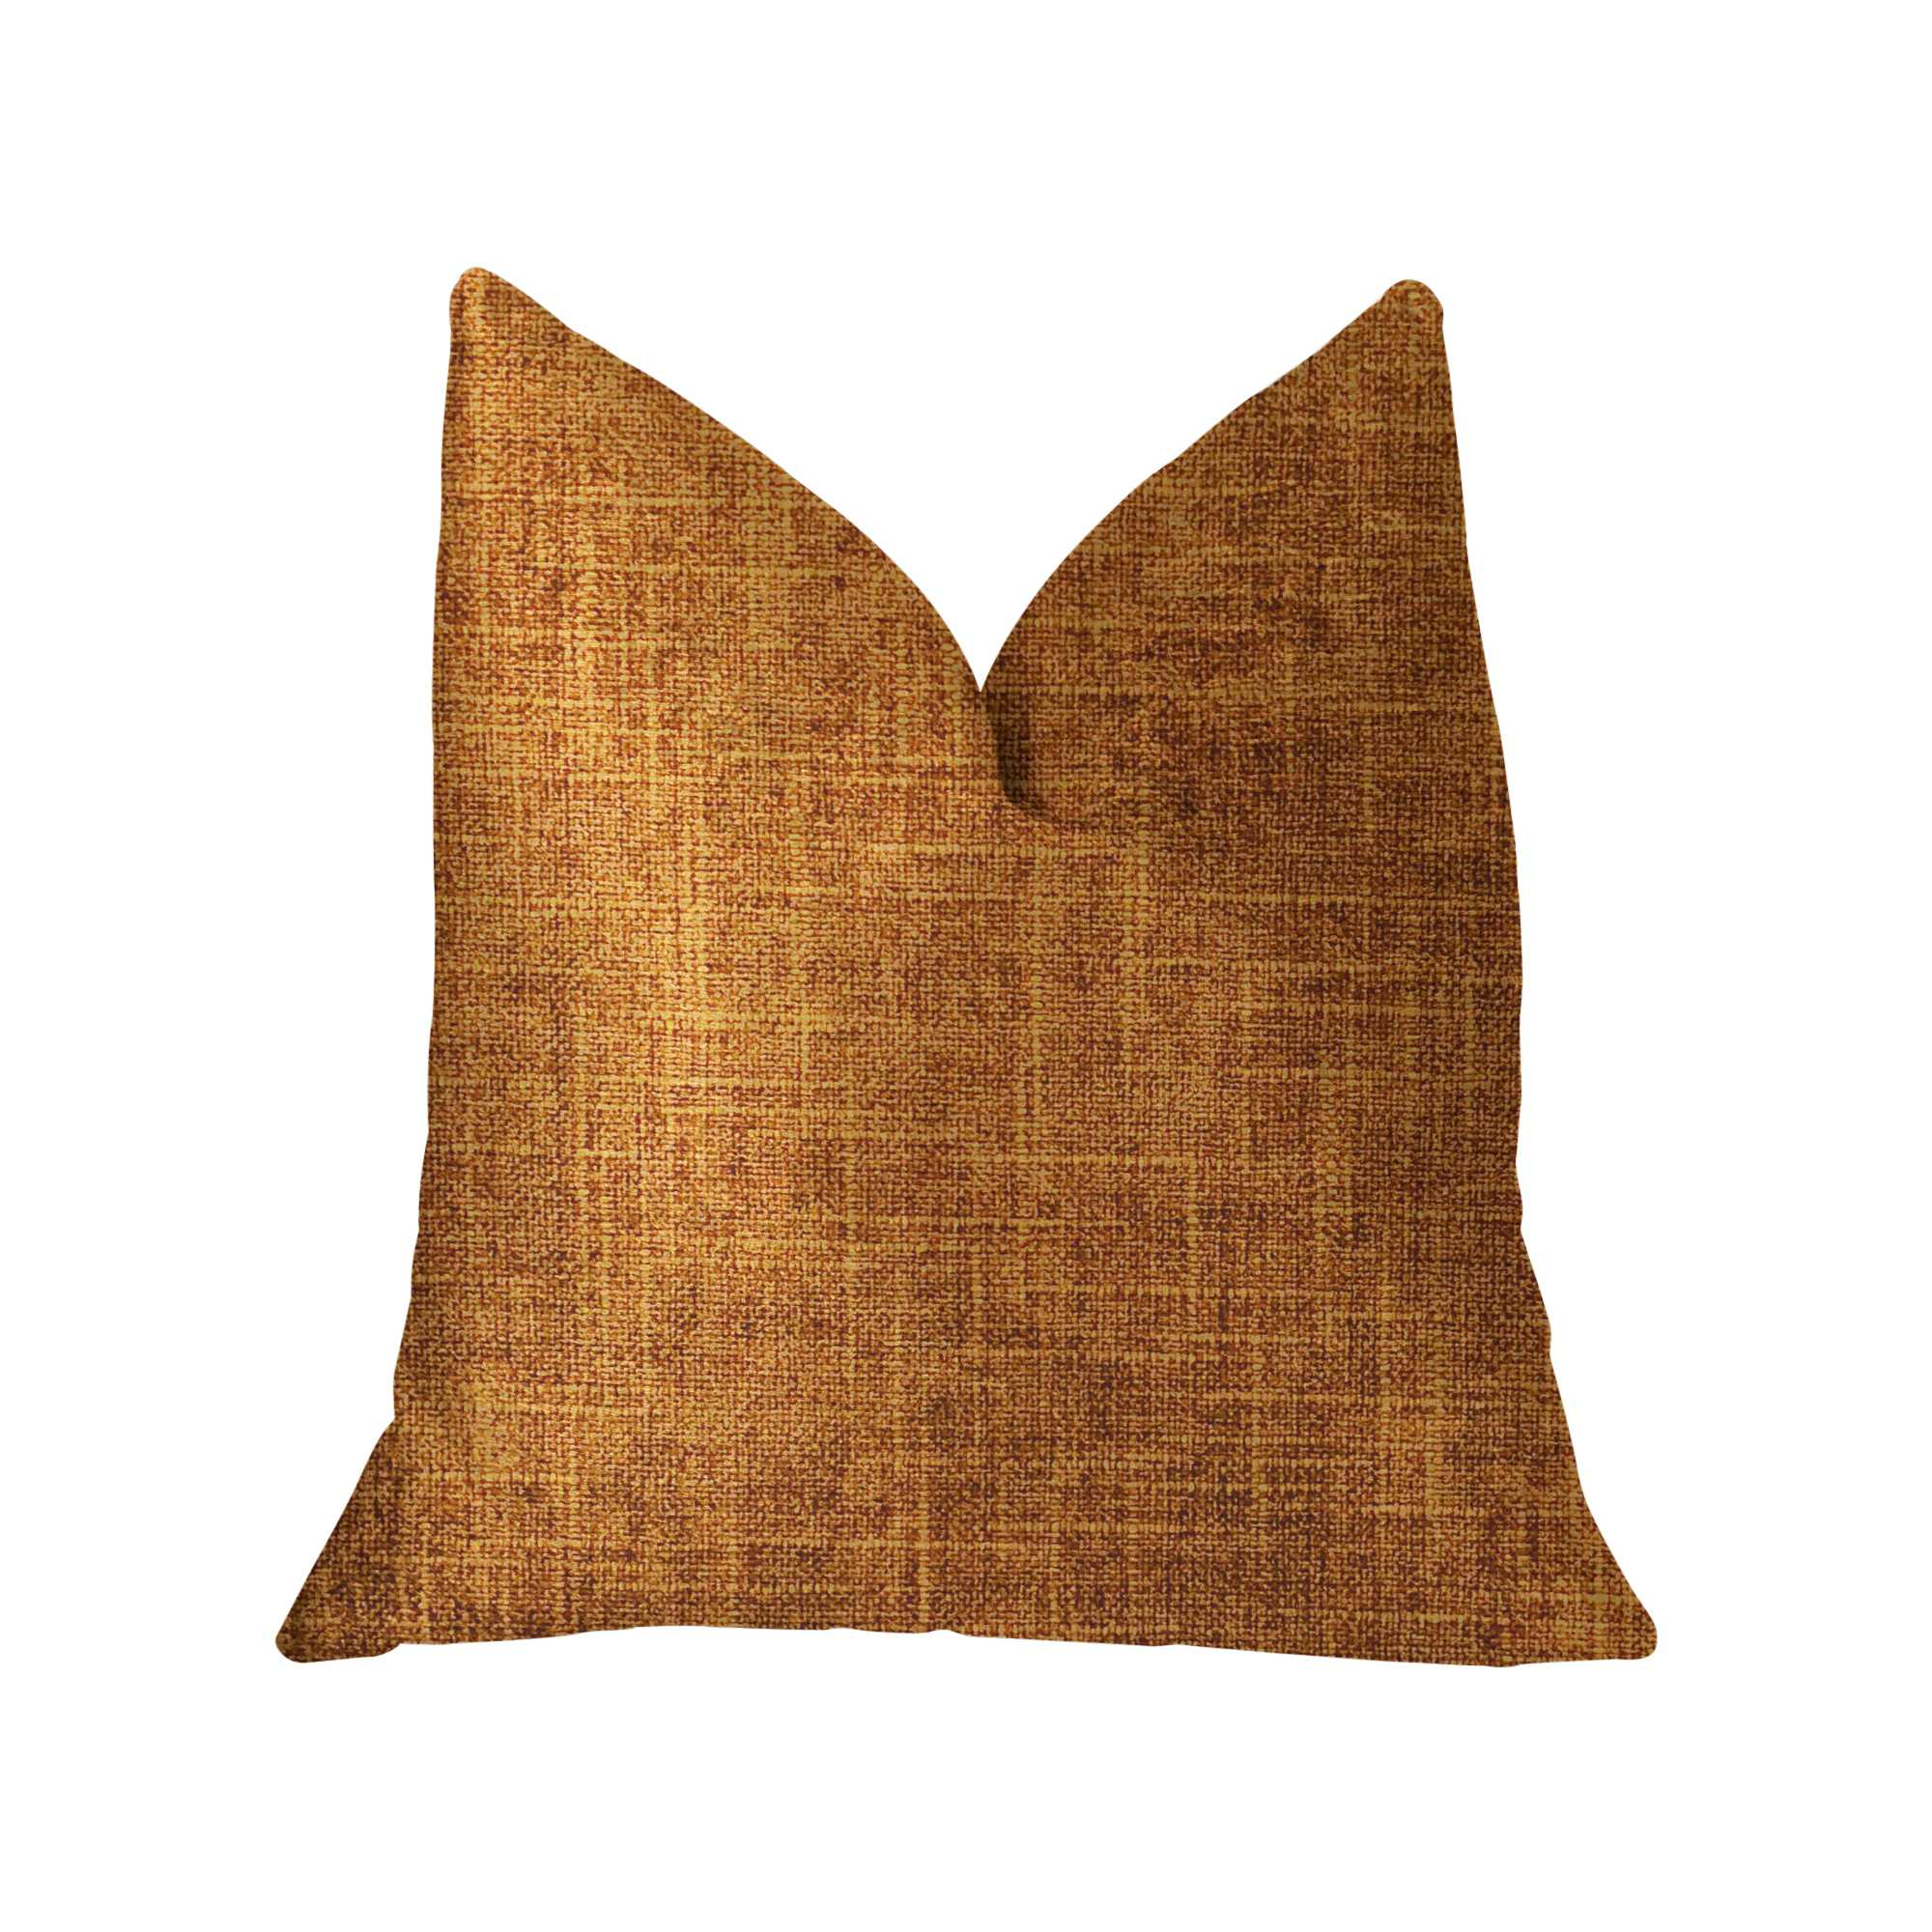 Brown and Gold Luxury Throw Pillow 22in x 22in